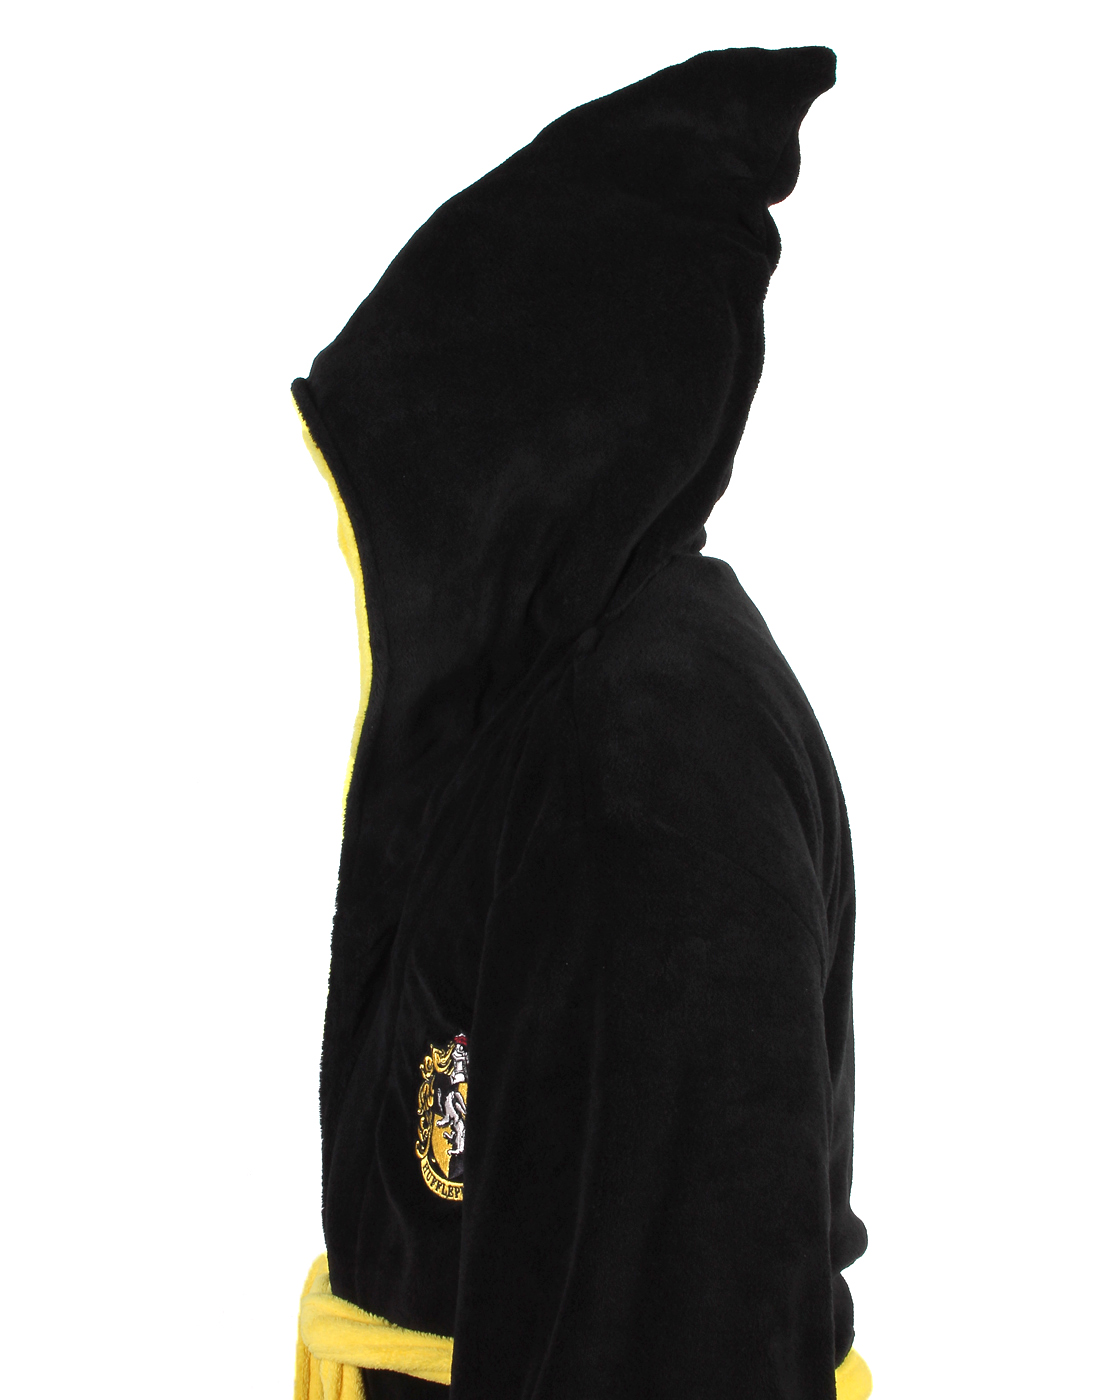 Harry-Potter-ALL-HOUSES-Adult-Fleece-Hooded-Bathrobe-One-Size miniature 12